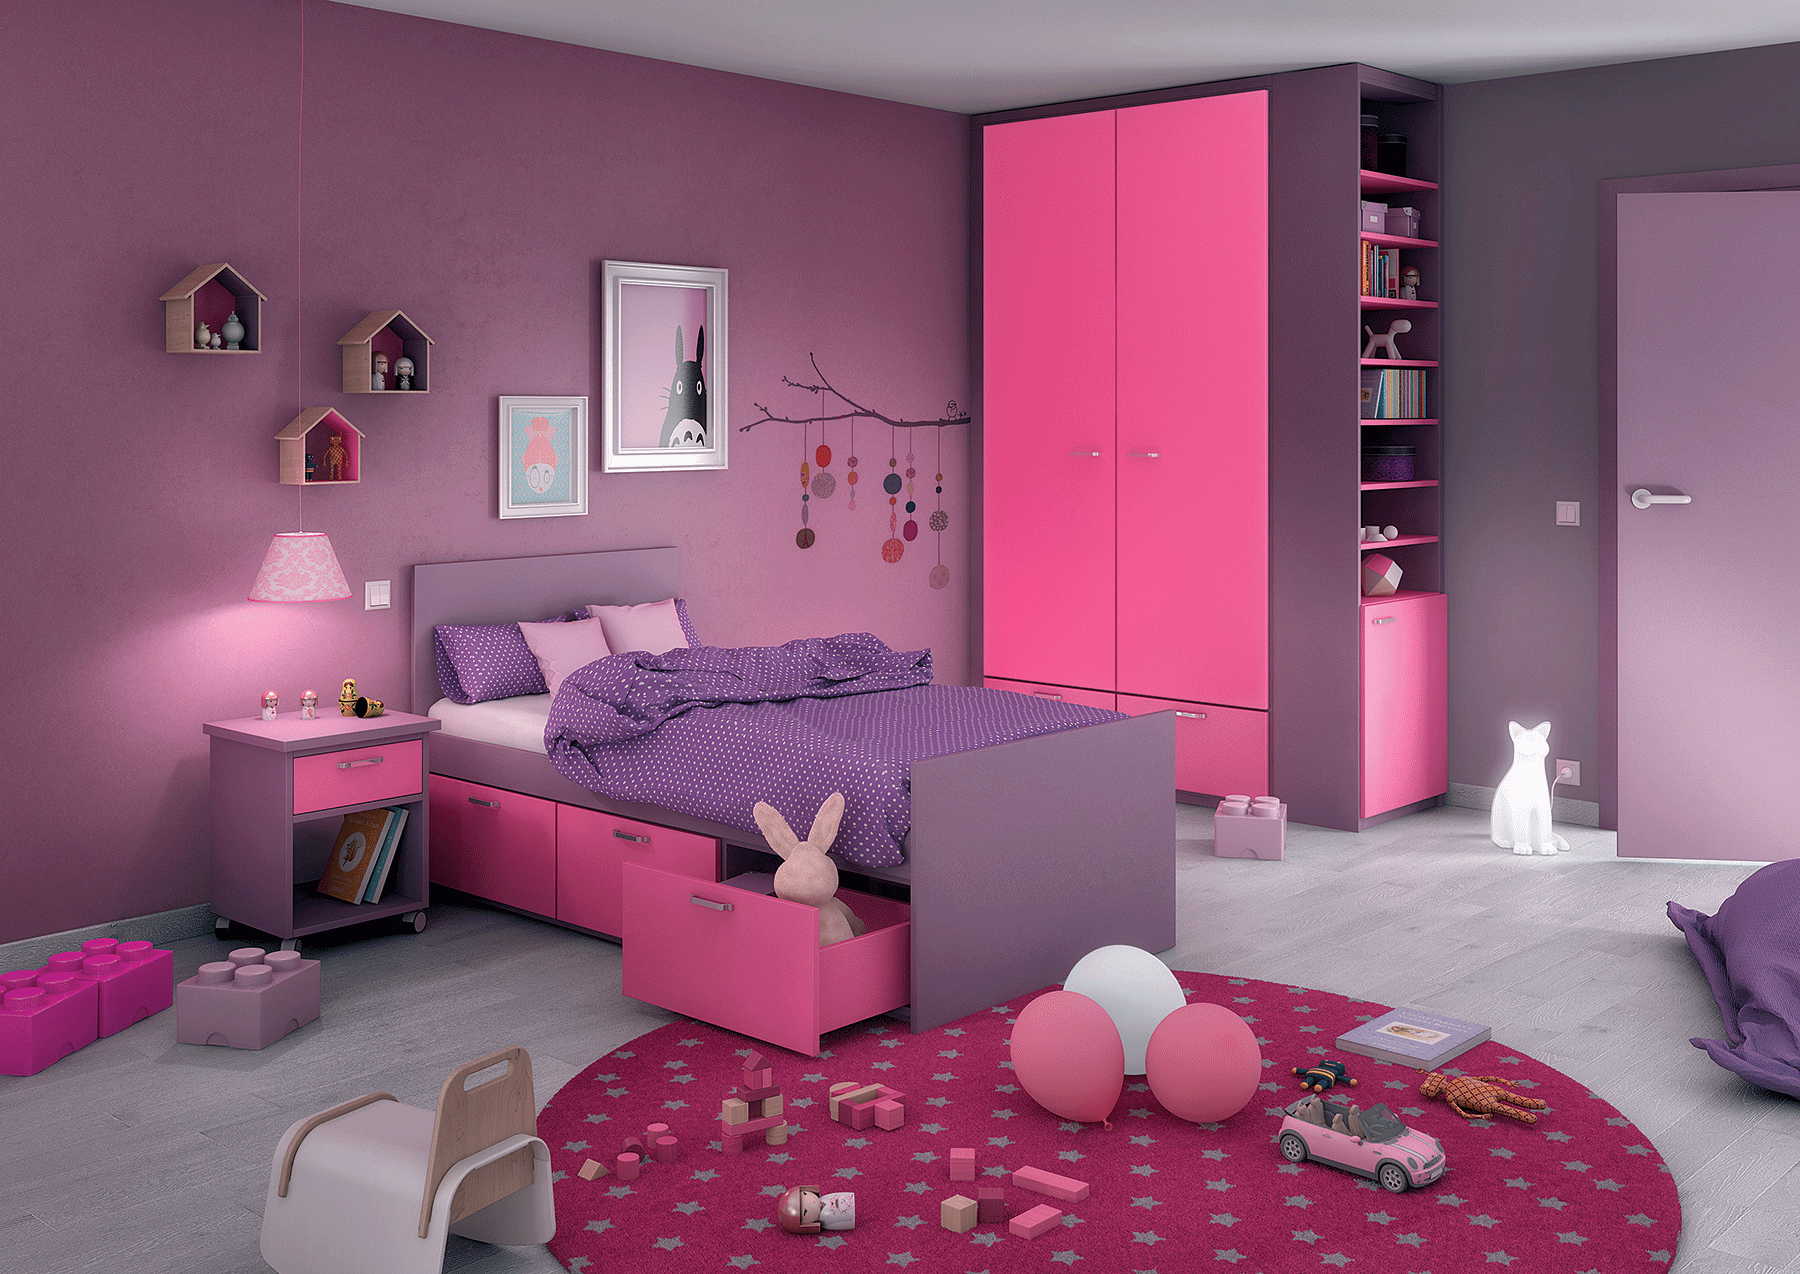 rangement dans une chambre d 39 enfant l 39 am nagement sur mesure. Black Bedroom Furniture Sets. Home Design Ideas